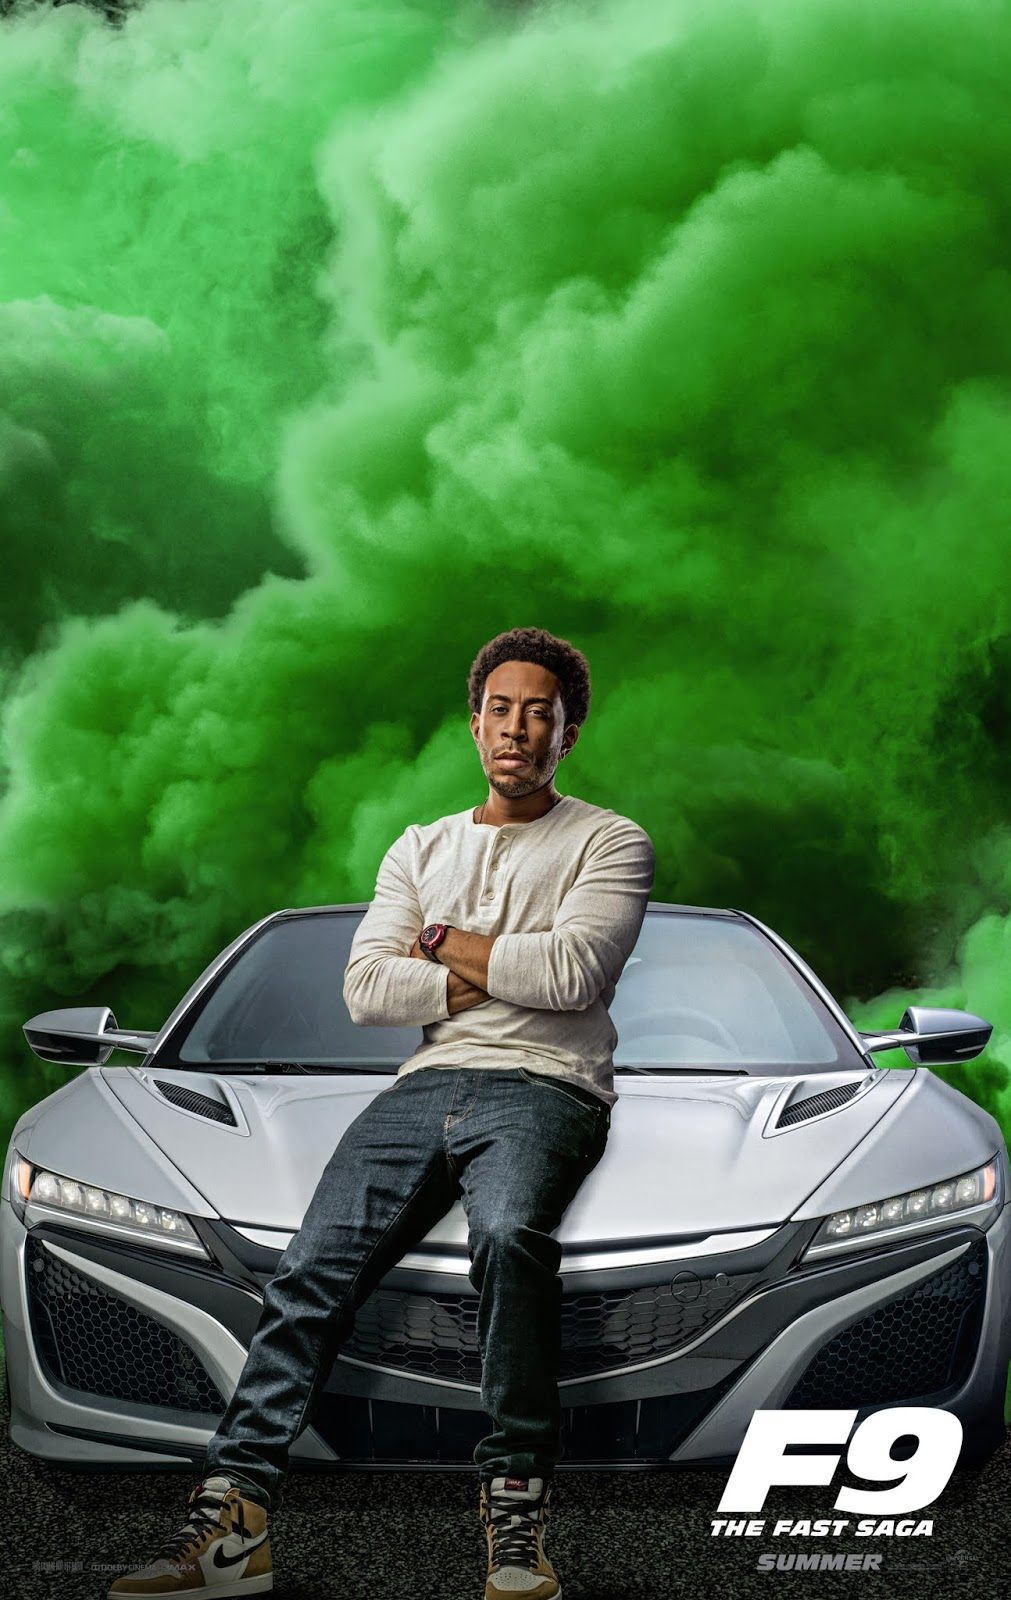 Ludacris - Fast and Furious 9